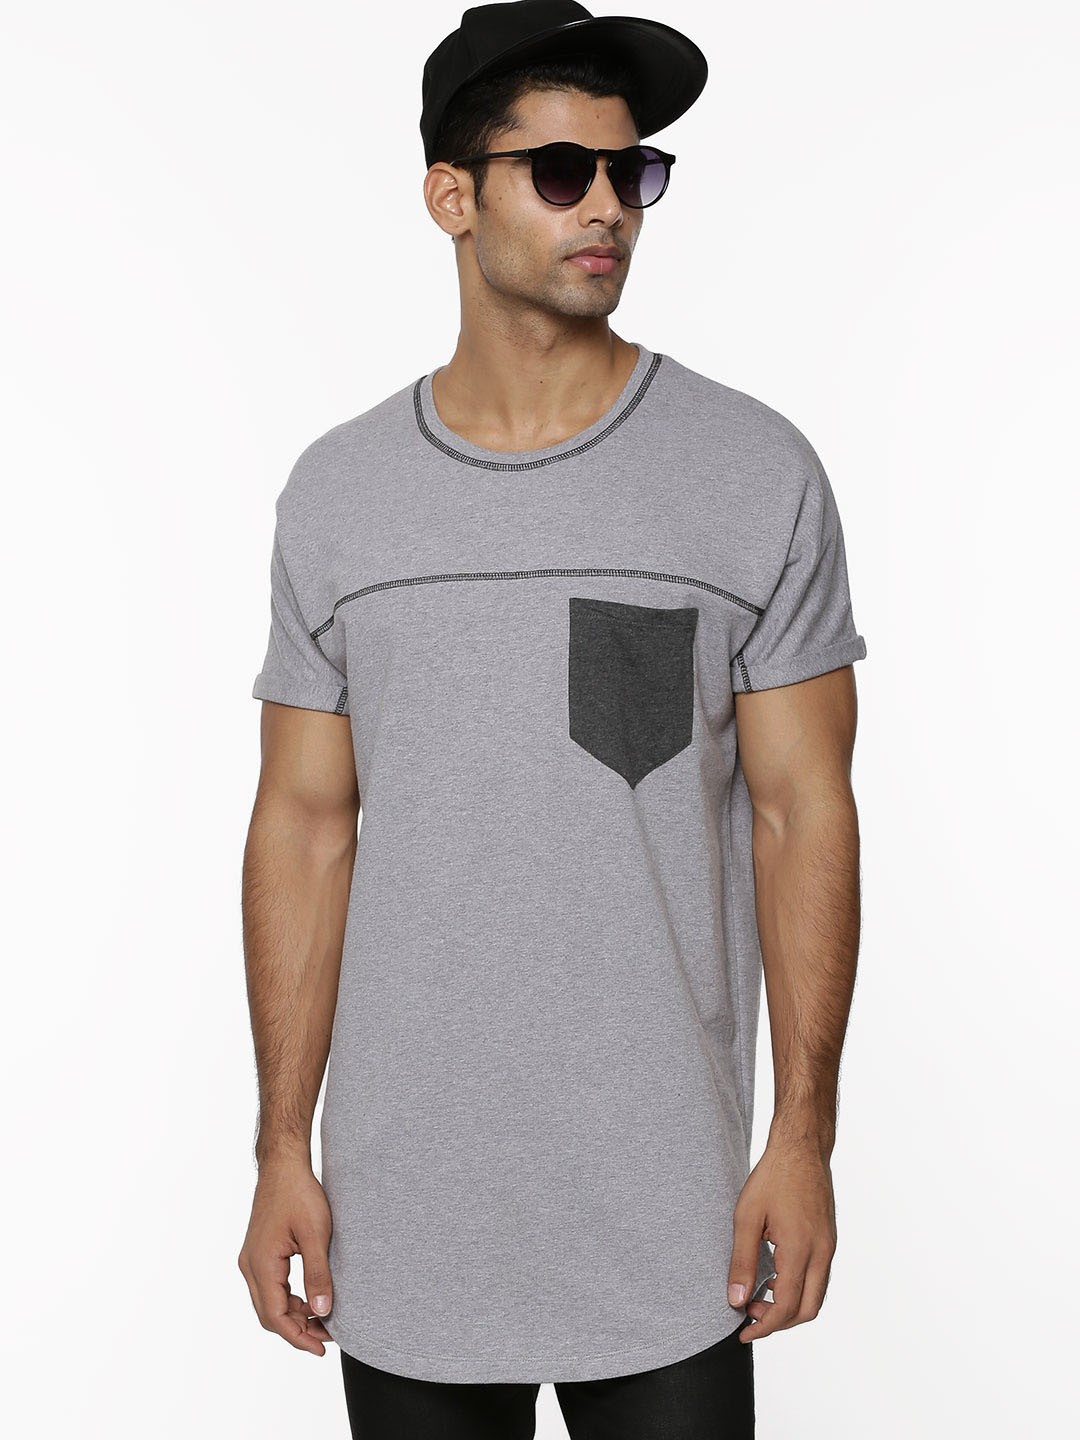 buy koovs oversized tee for men men 39 s grey t shirts. Black Bedroom Furniture Sets. Home Design Ideas